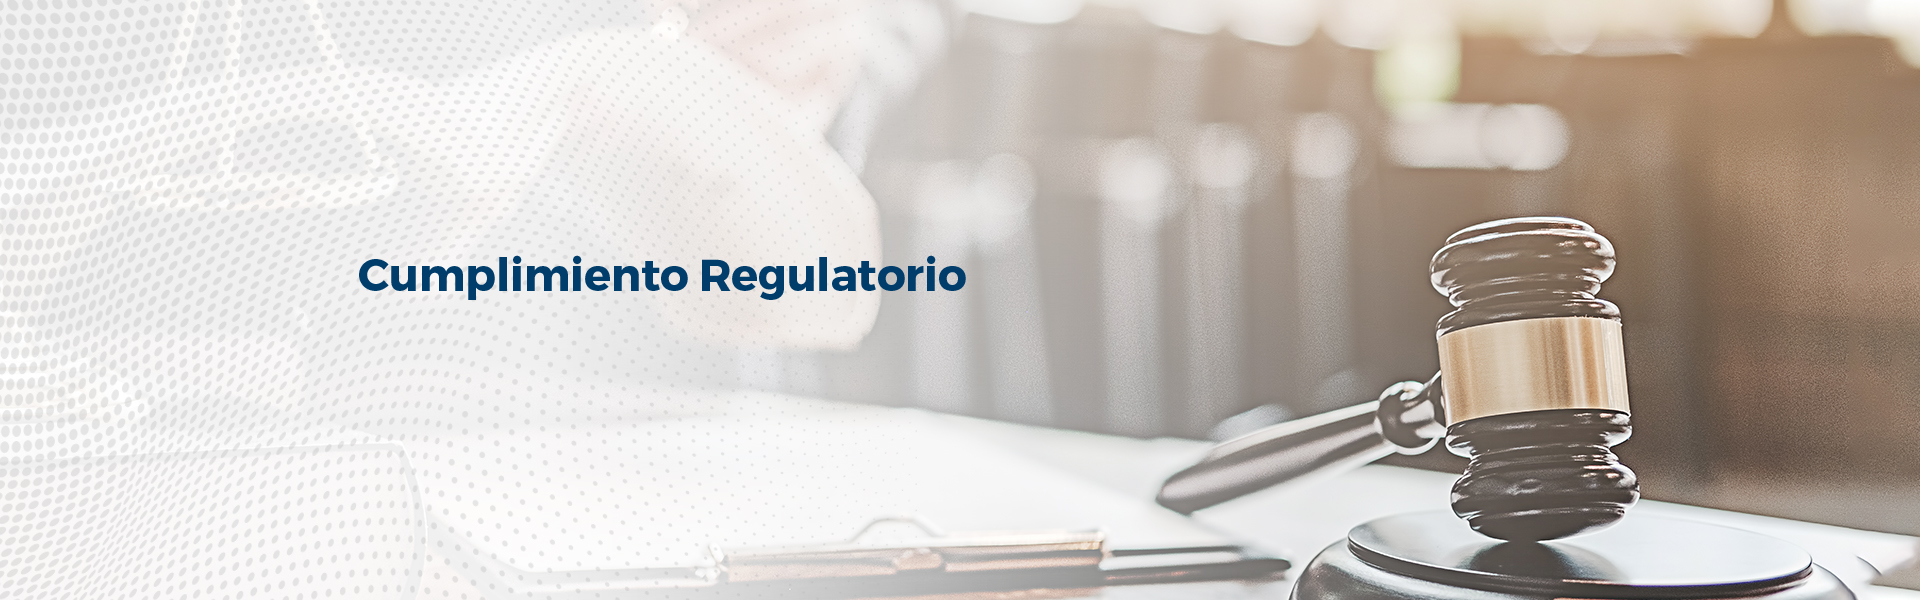 slide-cumplimiento-regulatorio